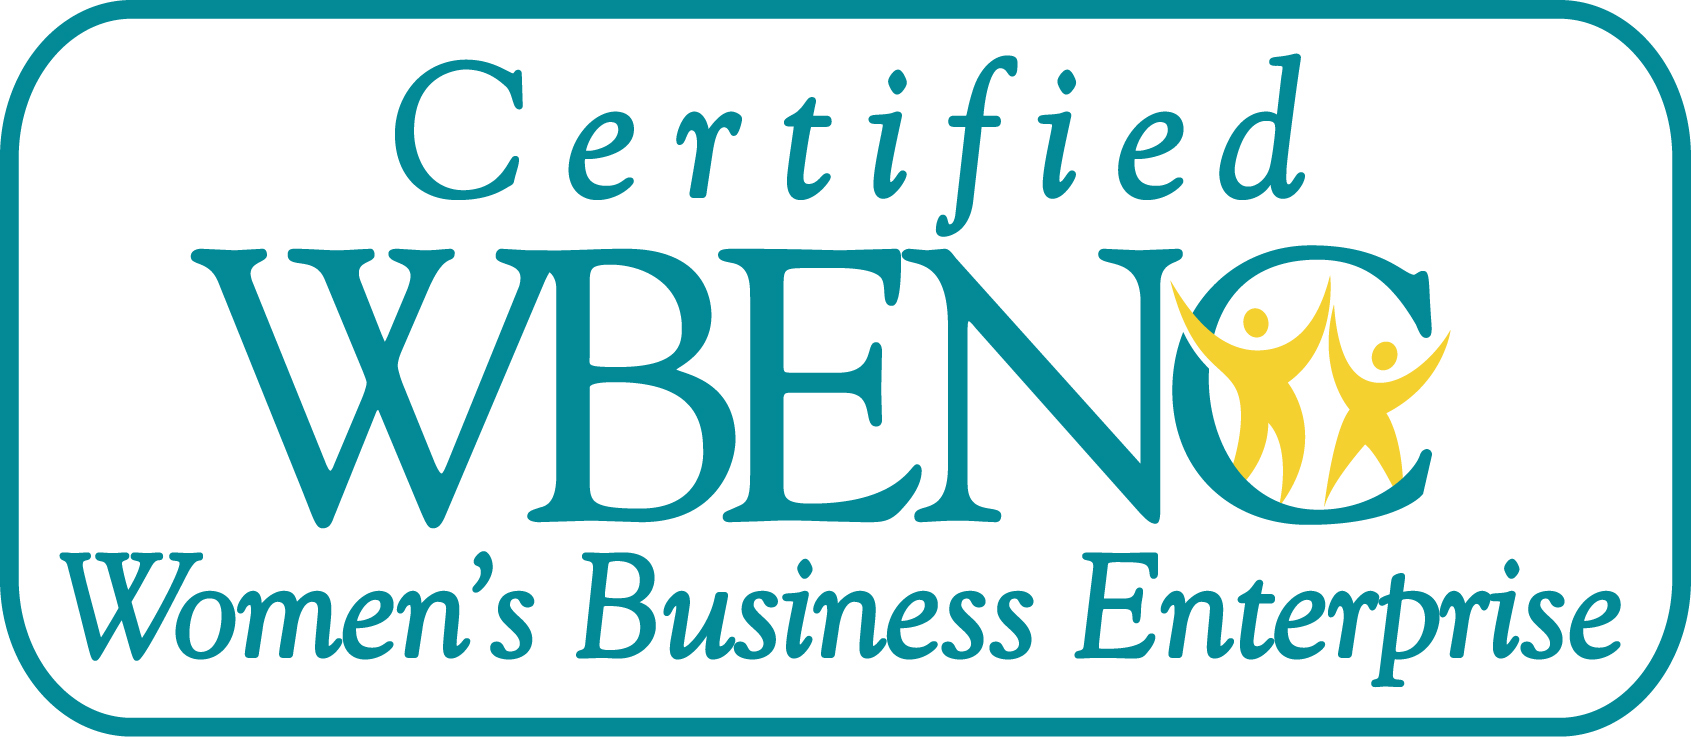 Rth solutions receives national recognized wbenc women owned rth solutions receives national recognized wbenc women owned business certification 1betcityfo Image collections